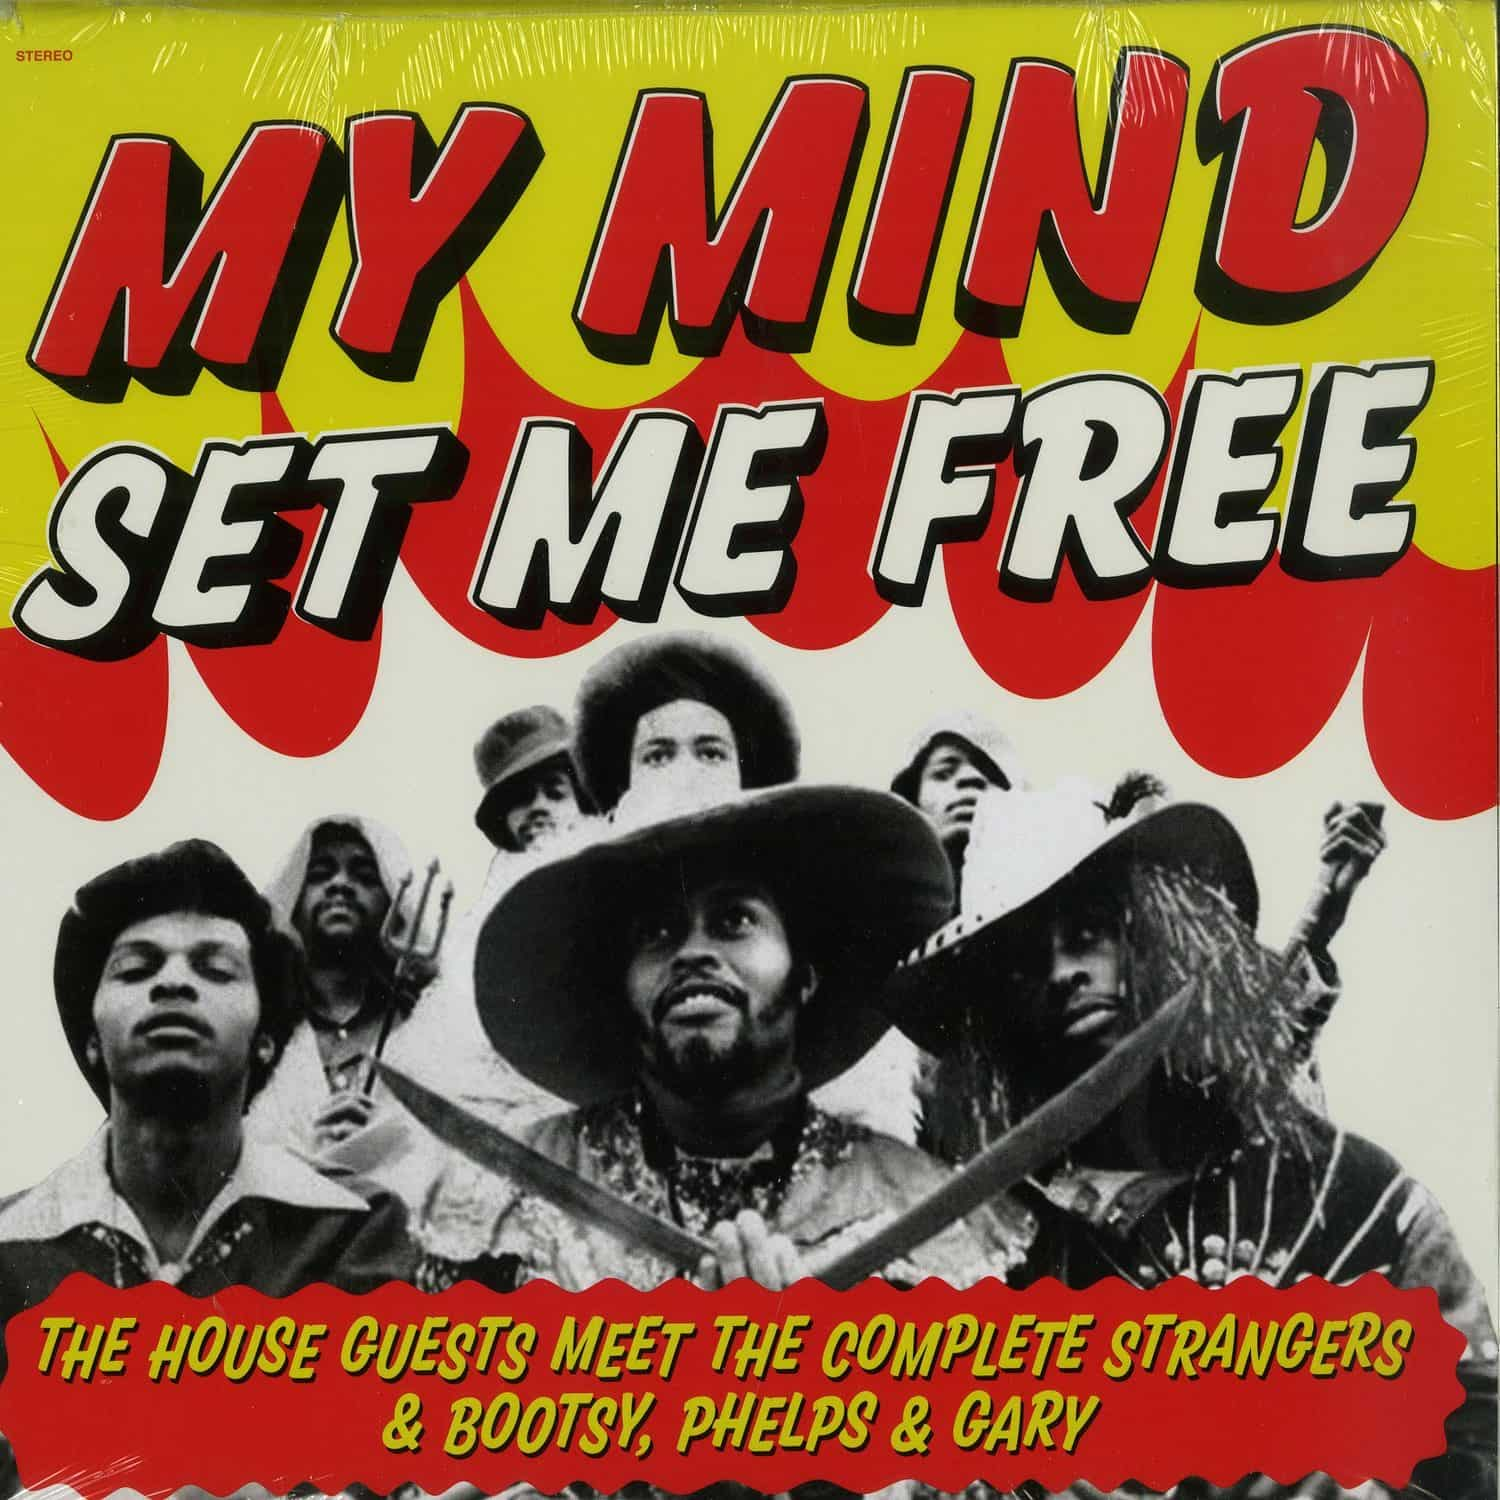 The House Guests Meet The Complete Strangers & Bootsy, Phelps & Gary - MY MIND SET ME FREE